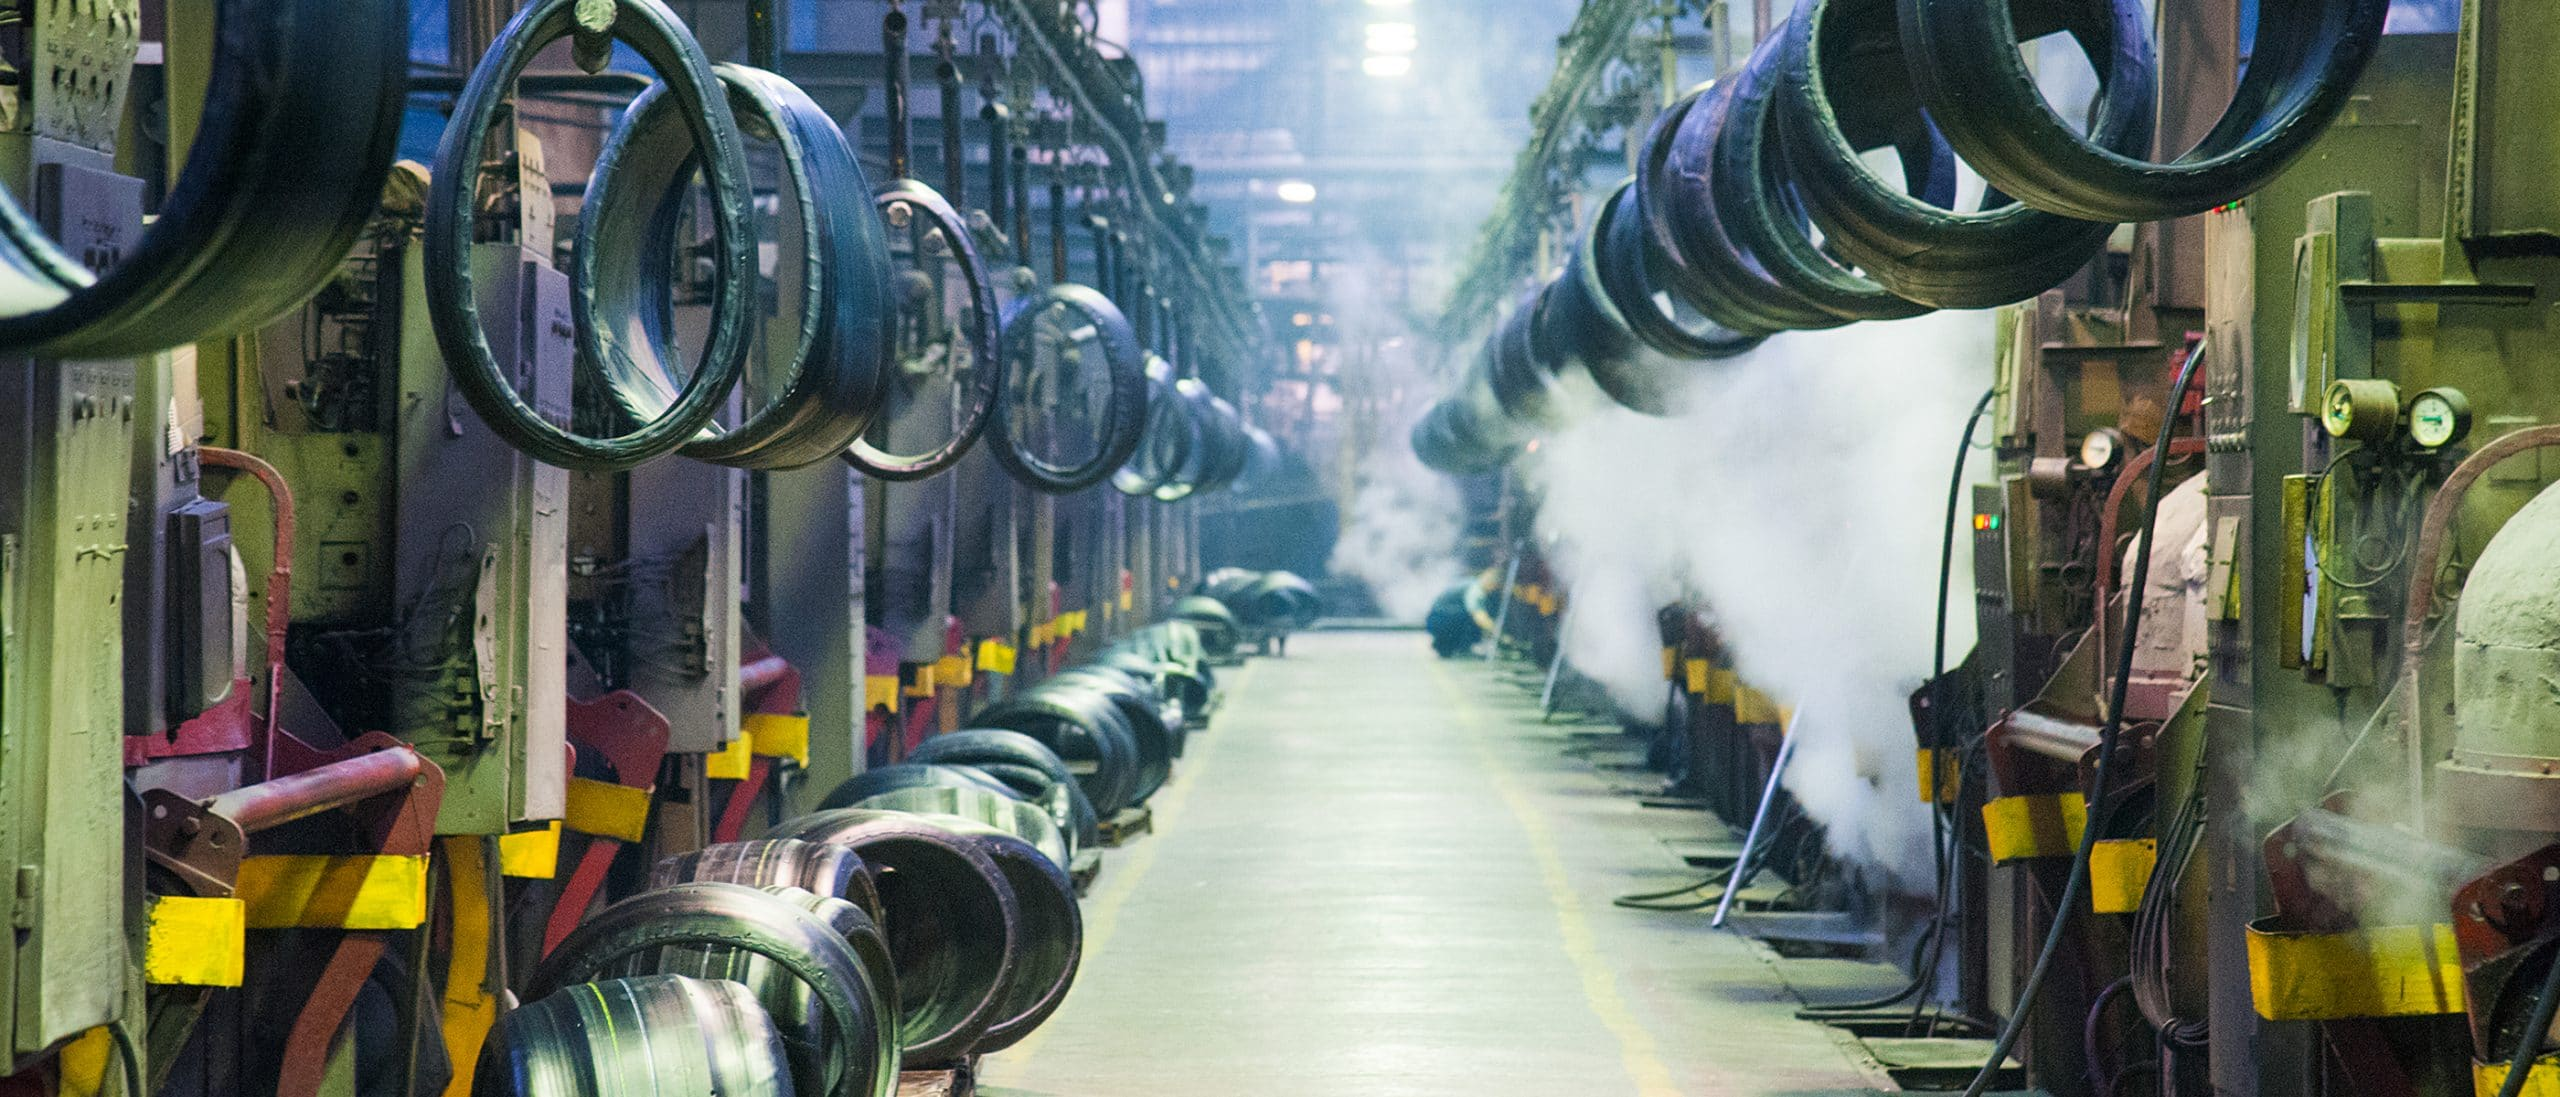 This is an image of a tire factory.